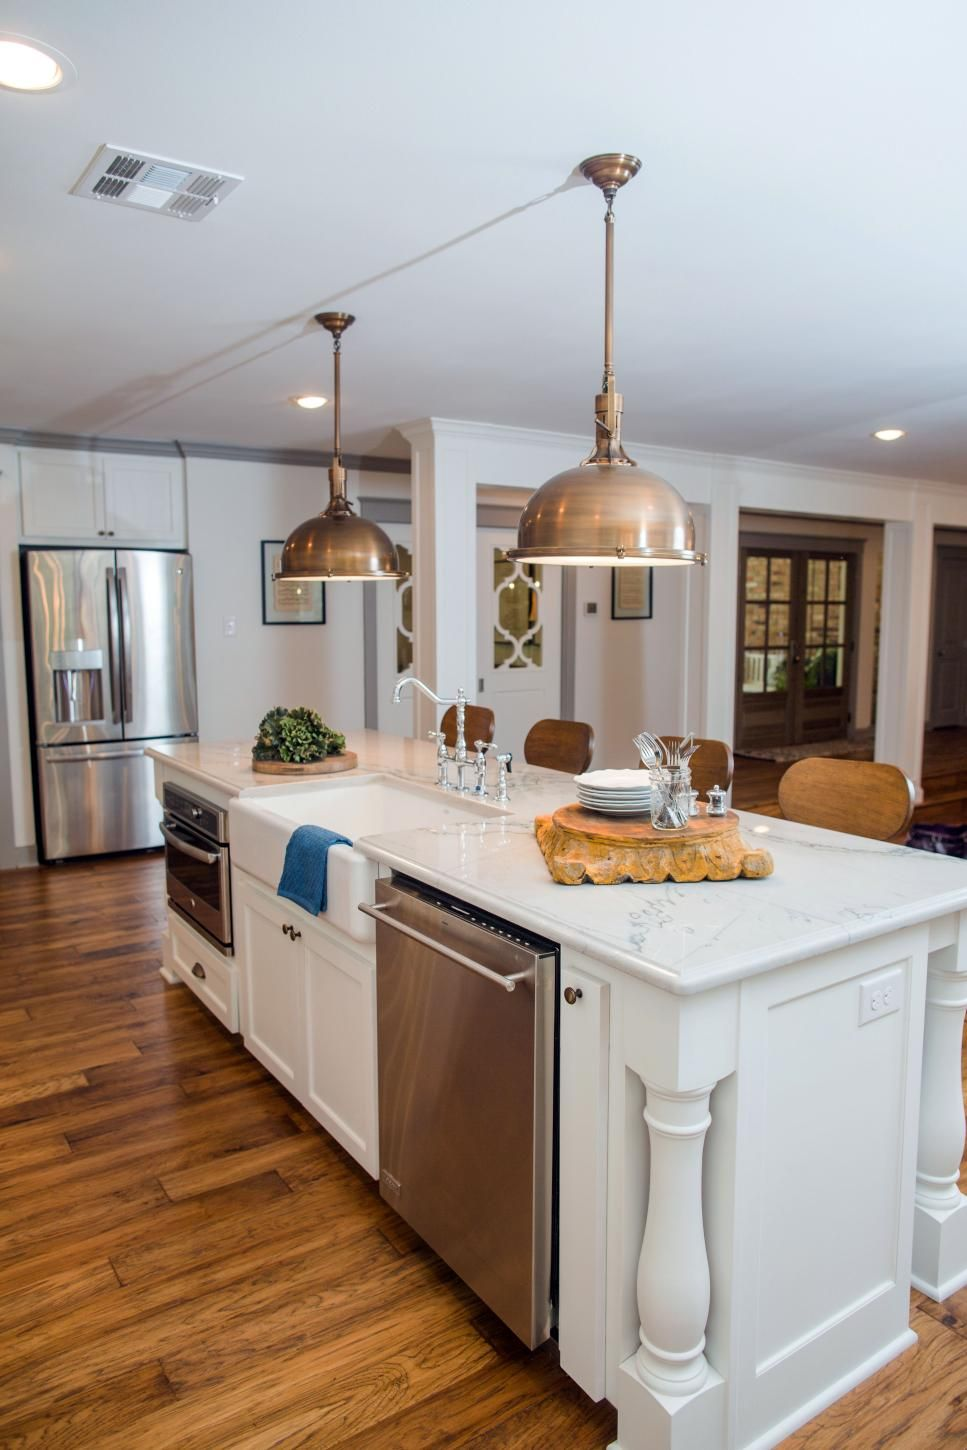 Fixer upper a big fix for a house in the woods hgtvs fixer upper with chip and joanna gaines hgtv